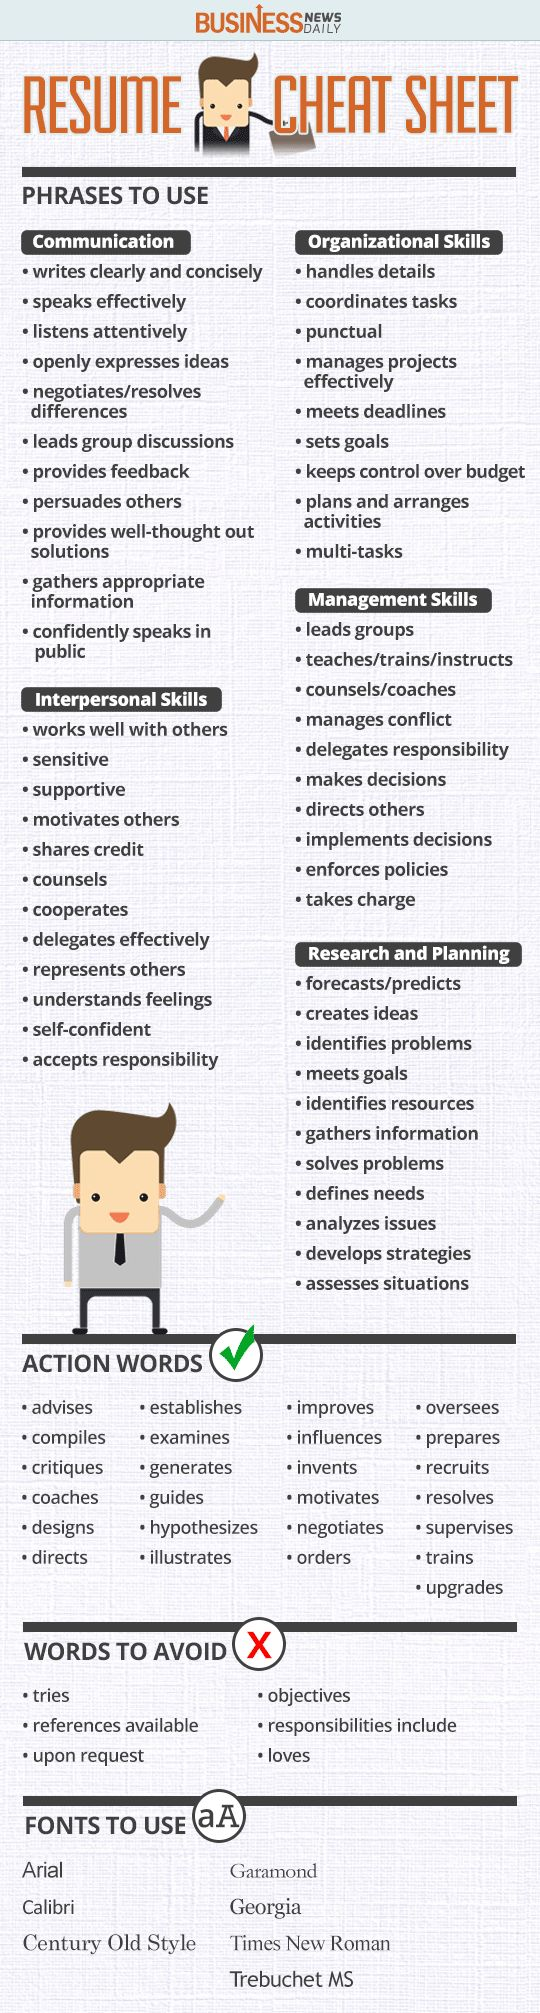 Opposenewapstandardsus  Unusual  Ideas About Resume On Pinterest  Cv Format Resume Cv And  With Fascinating Resume Cheat Sheet Infographic Andrews Almost Done With A Complete Unit On Employment Which With Amazing Career Live Resume Also Resume Dates In Addition Executive Resume Services And Warehouse Resume Samples As Well As Software Tester Resume Additionally Example Skills For Resume From Pinterestcom With Opposenewapstandardsus  Fascinating  Ideas About Resume On Pinterest  Cv Format Resume Cv And  With Amazing Resume Cheat Sheet Infographic Andrews Almost Done With A Complete Unit On Employment Which And Unusual Career Live Resume Also Resume Dates In Addition Executive Resume Services From Pinterestcom